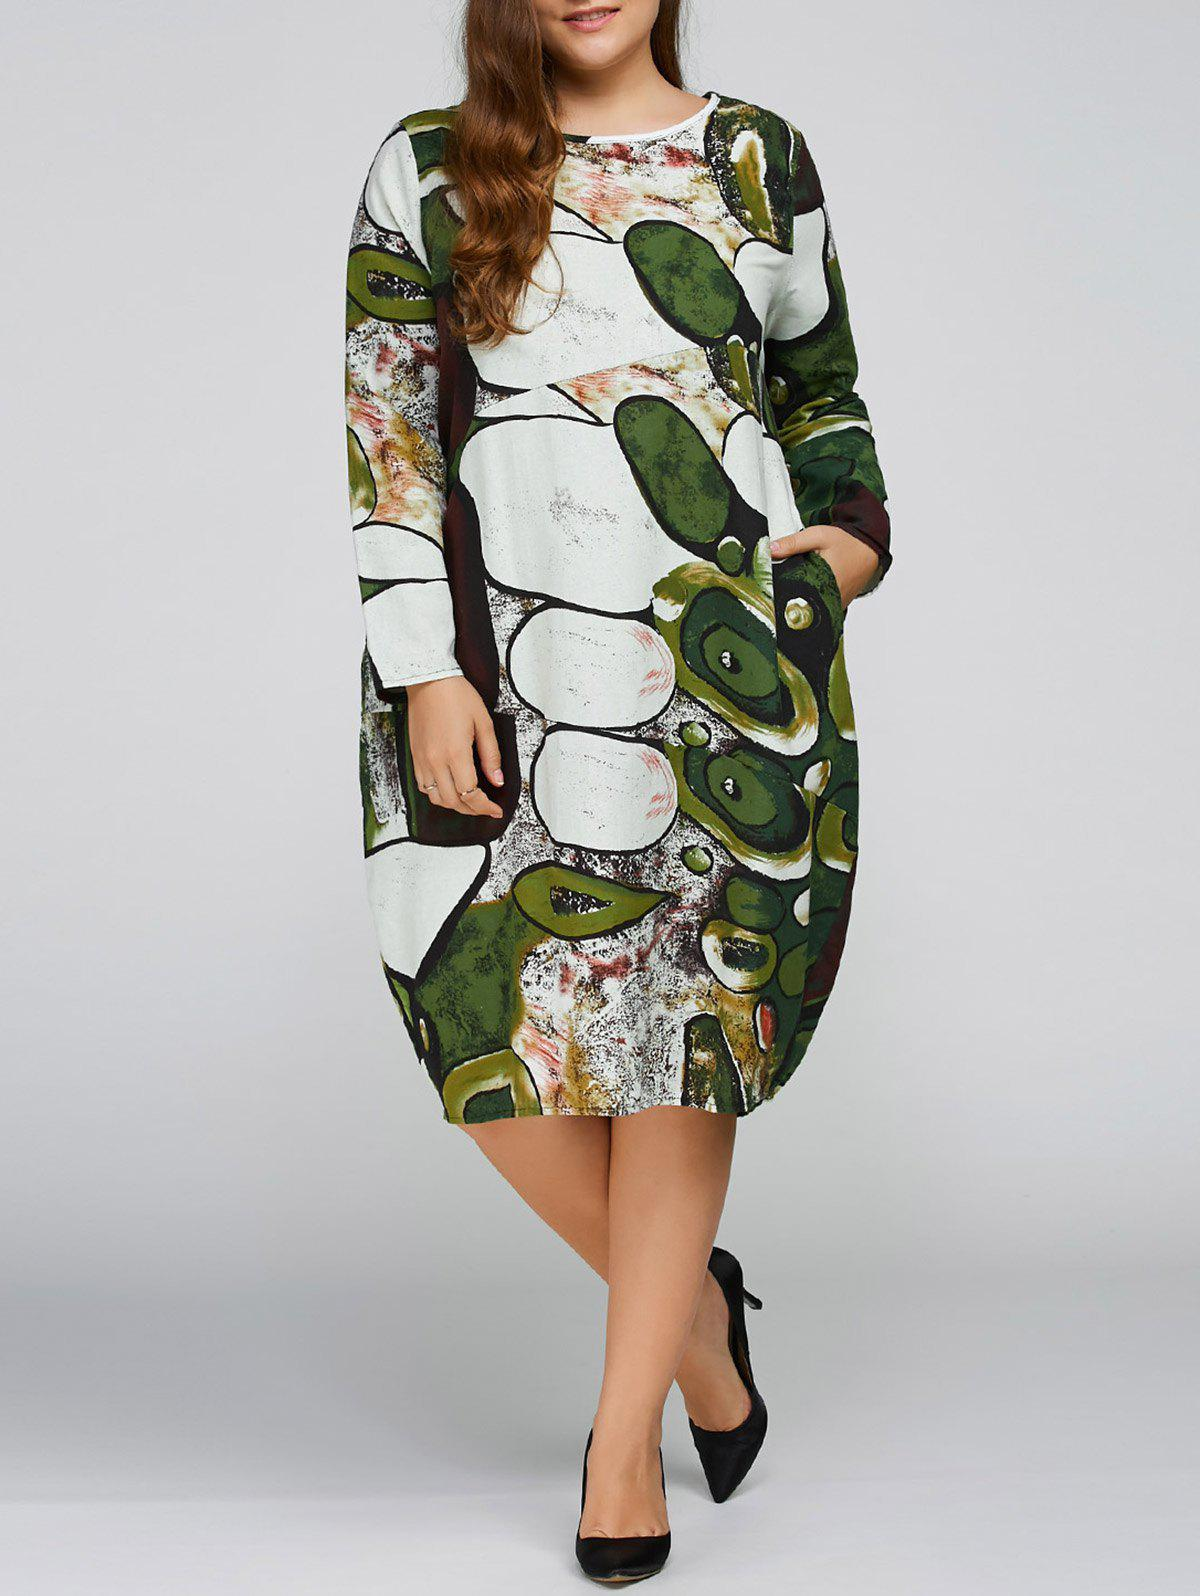 Long Sleeve Plus Size Cocoon Dress long sleeve plus size cocoon dress